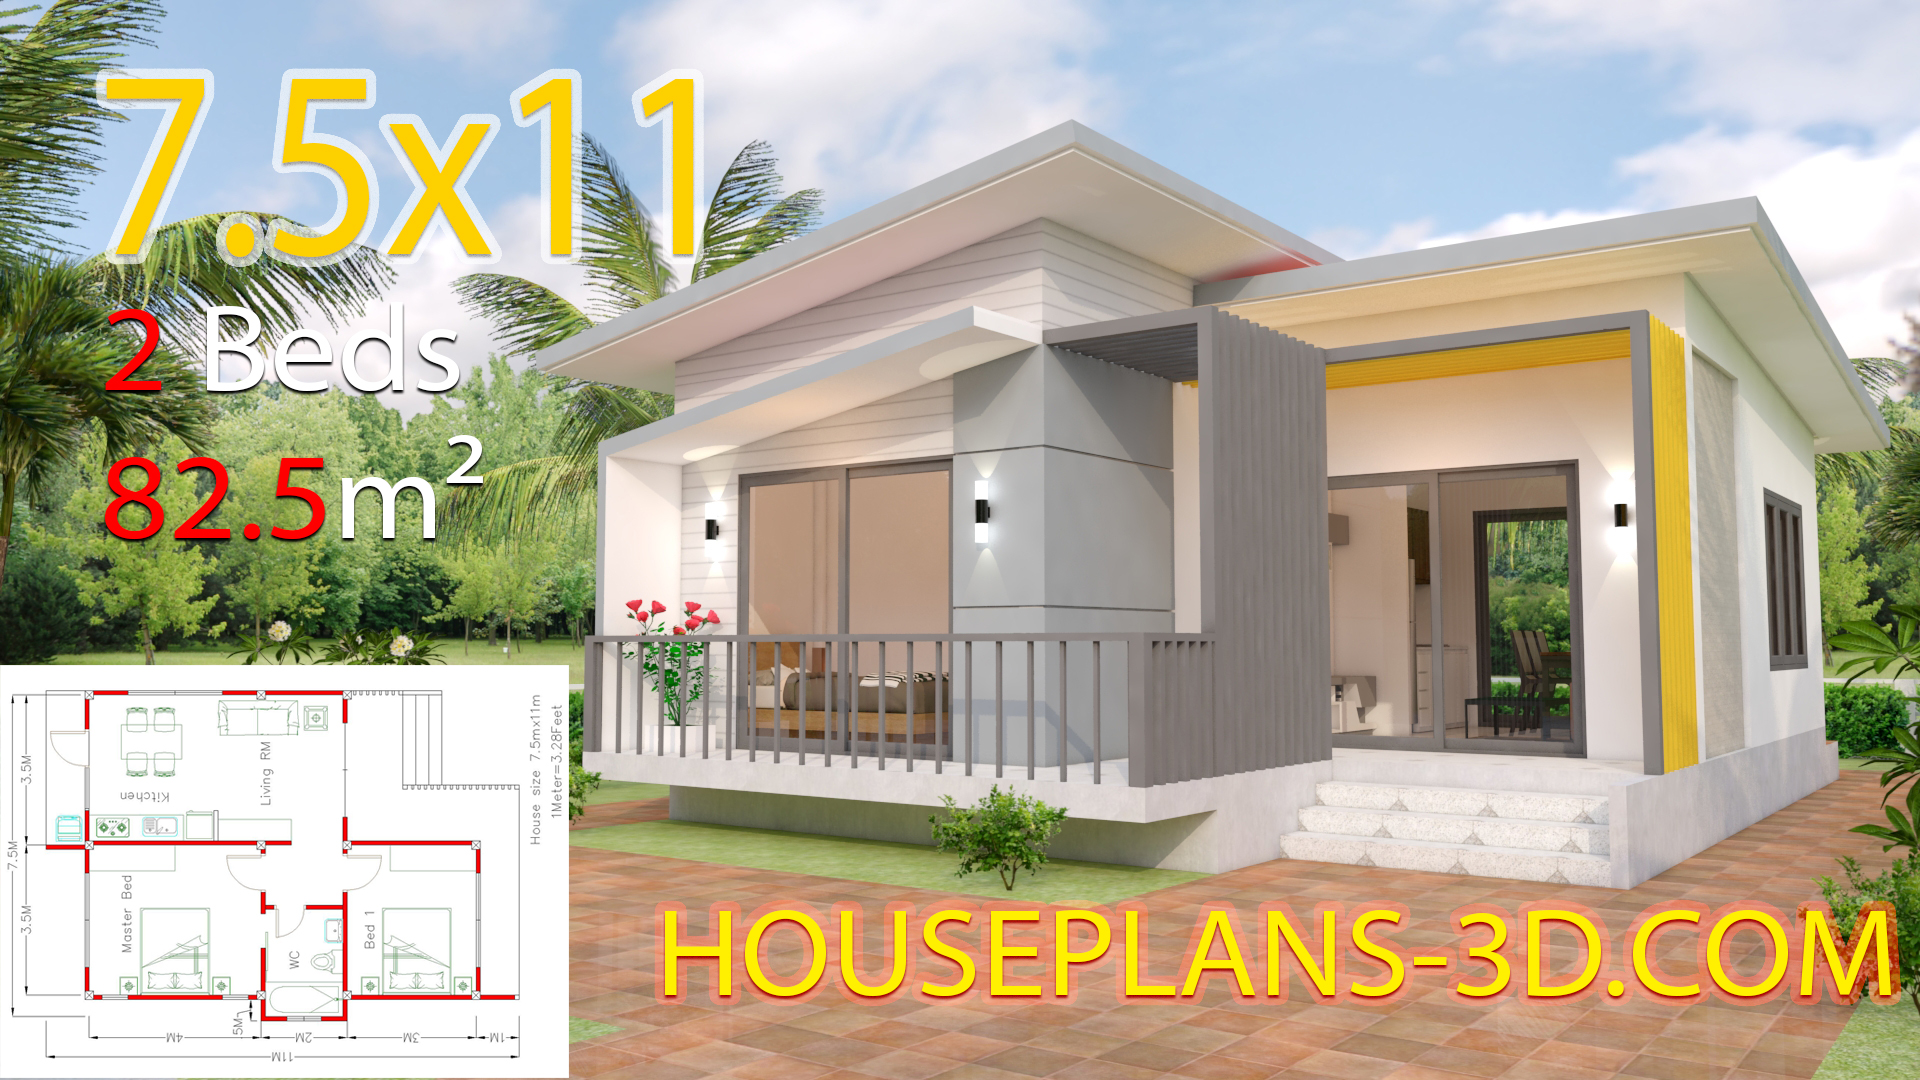 House Plans 7.5x11 with 2 Bedrooms Full plans - House Plans 3D